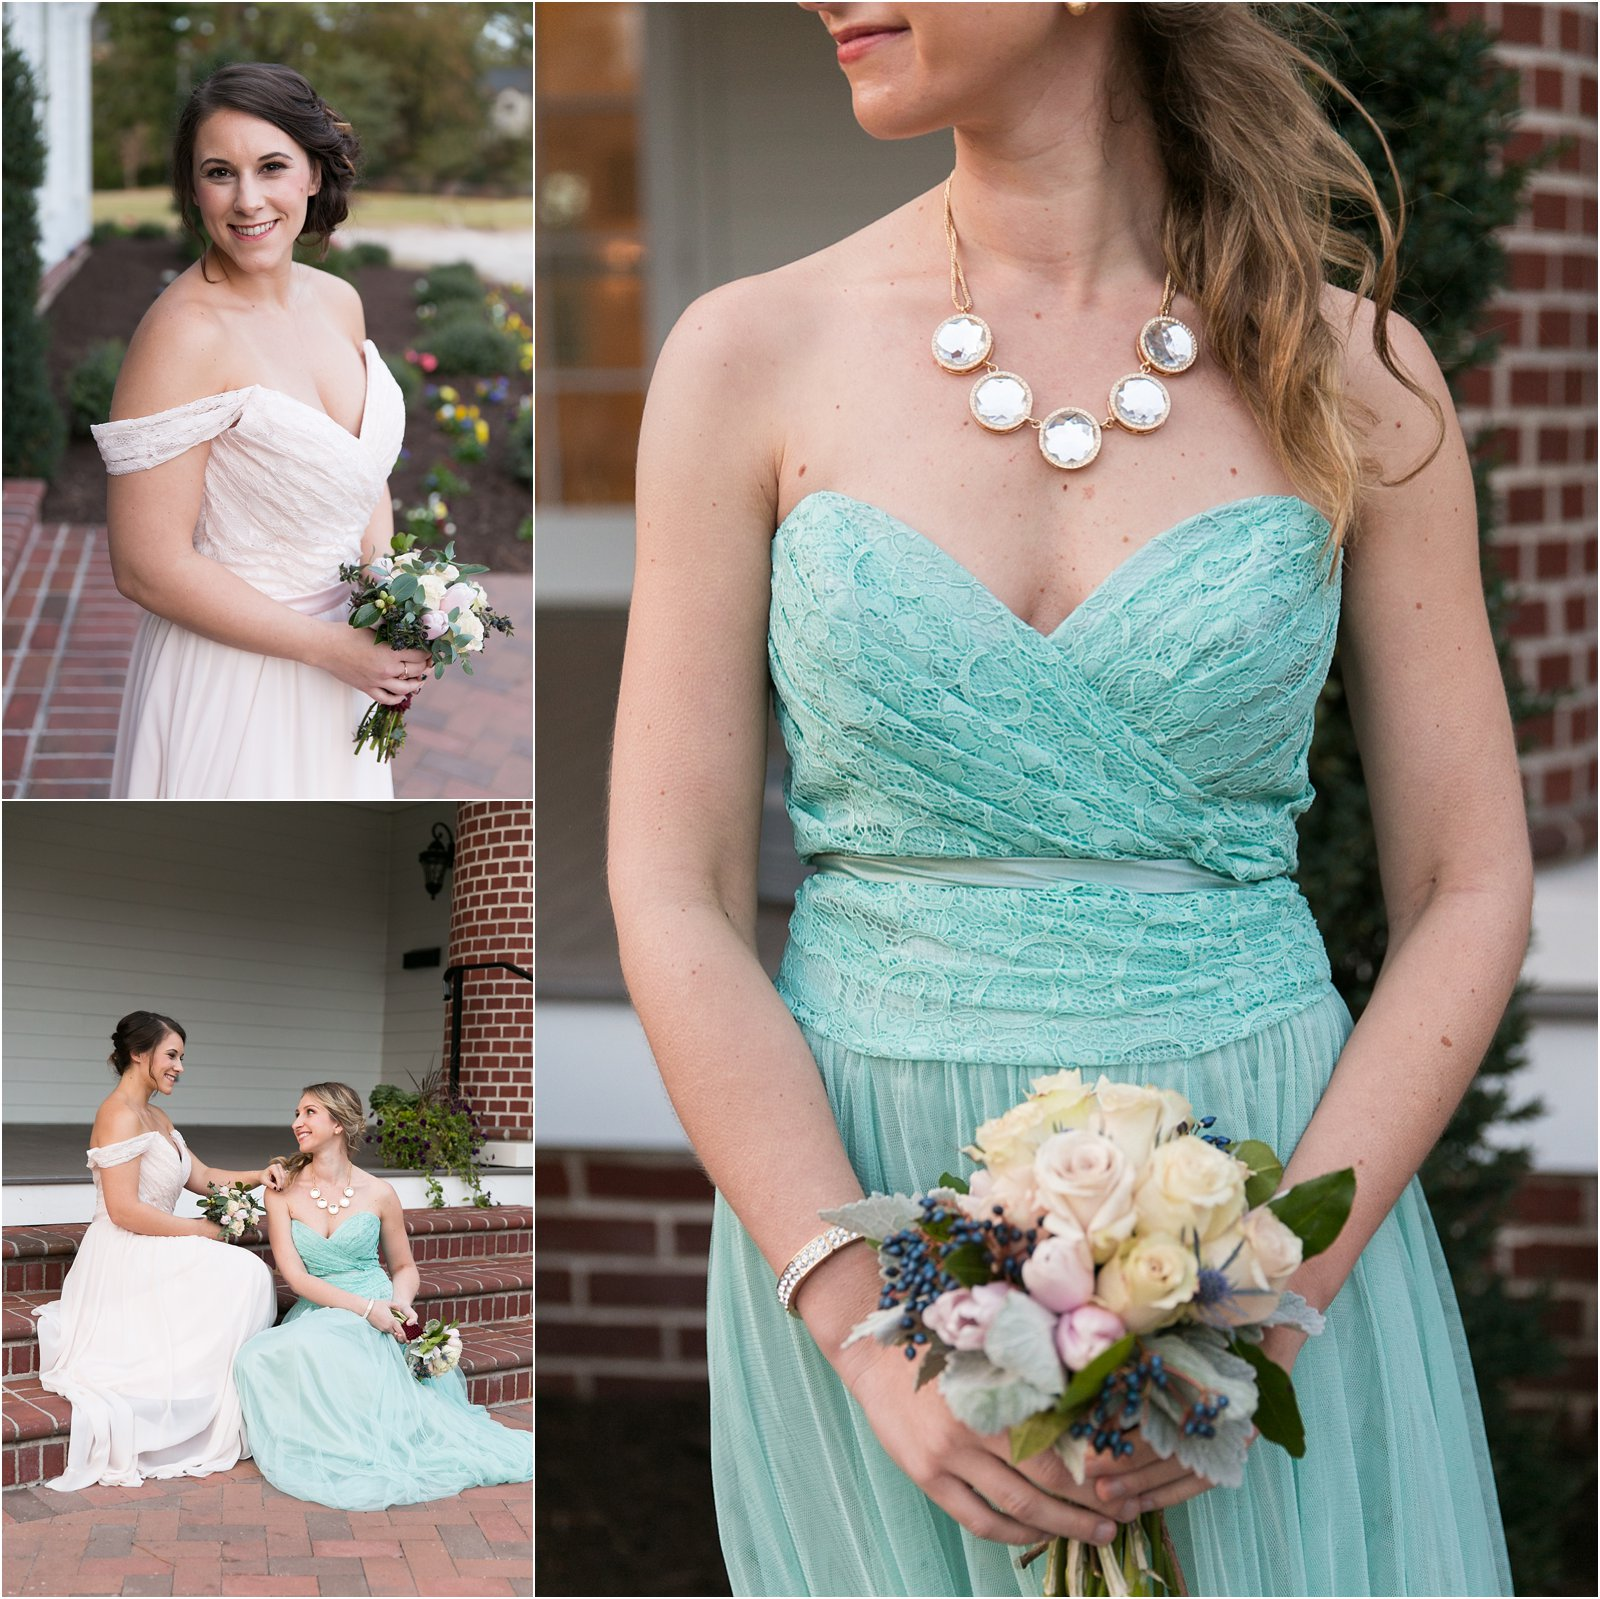 jessica_ryan_photography_walk_through_a_wedding_womans_club_of_portsmouth_wedding_0415